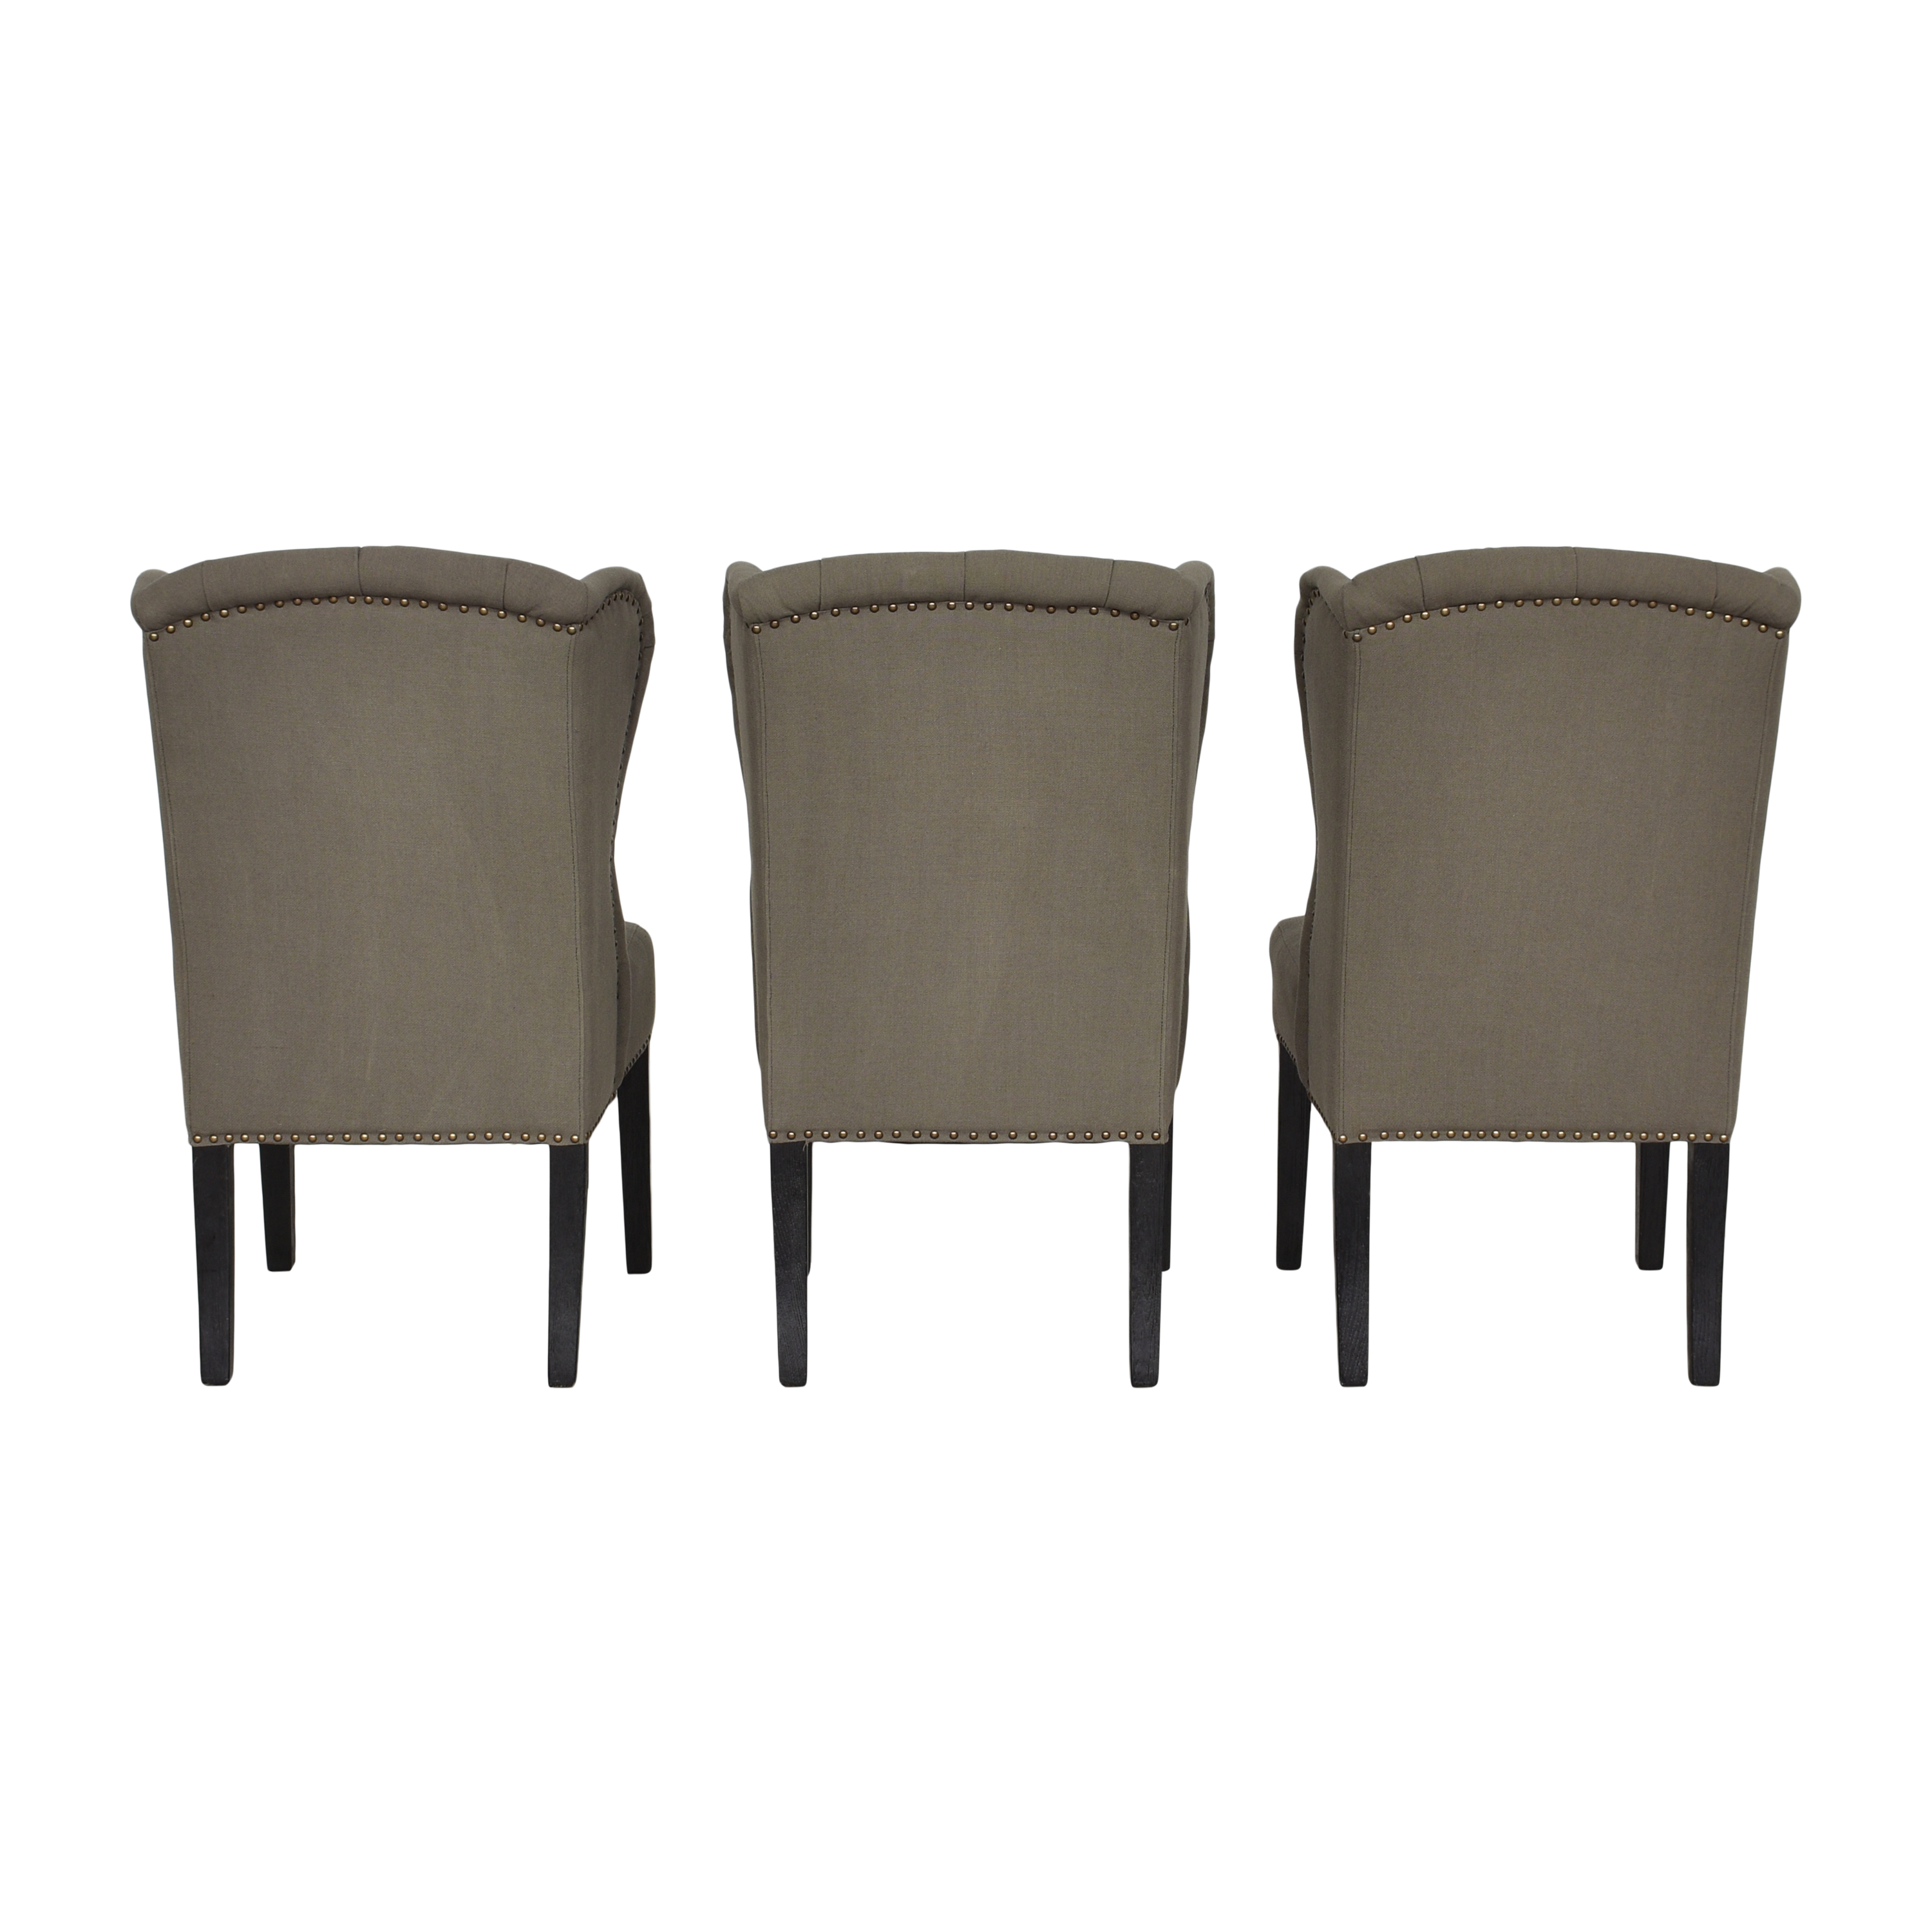 shop Arhaus Greyson Tufted Upholstered Dining Side Chairs Arhaus Chairs